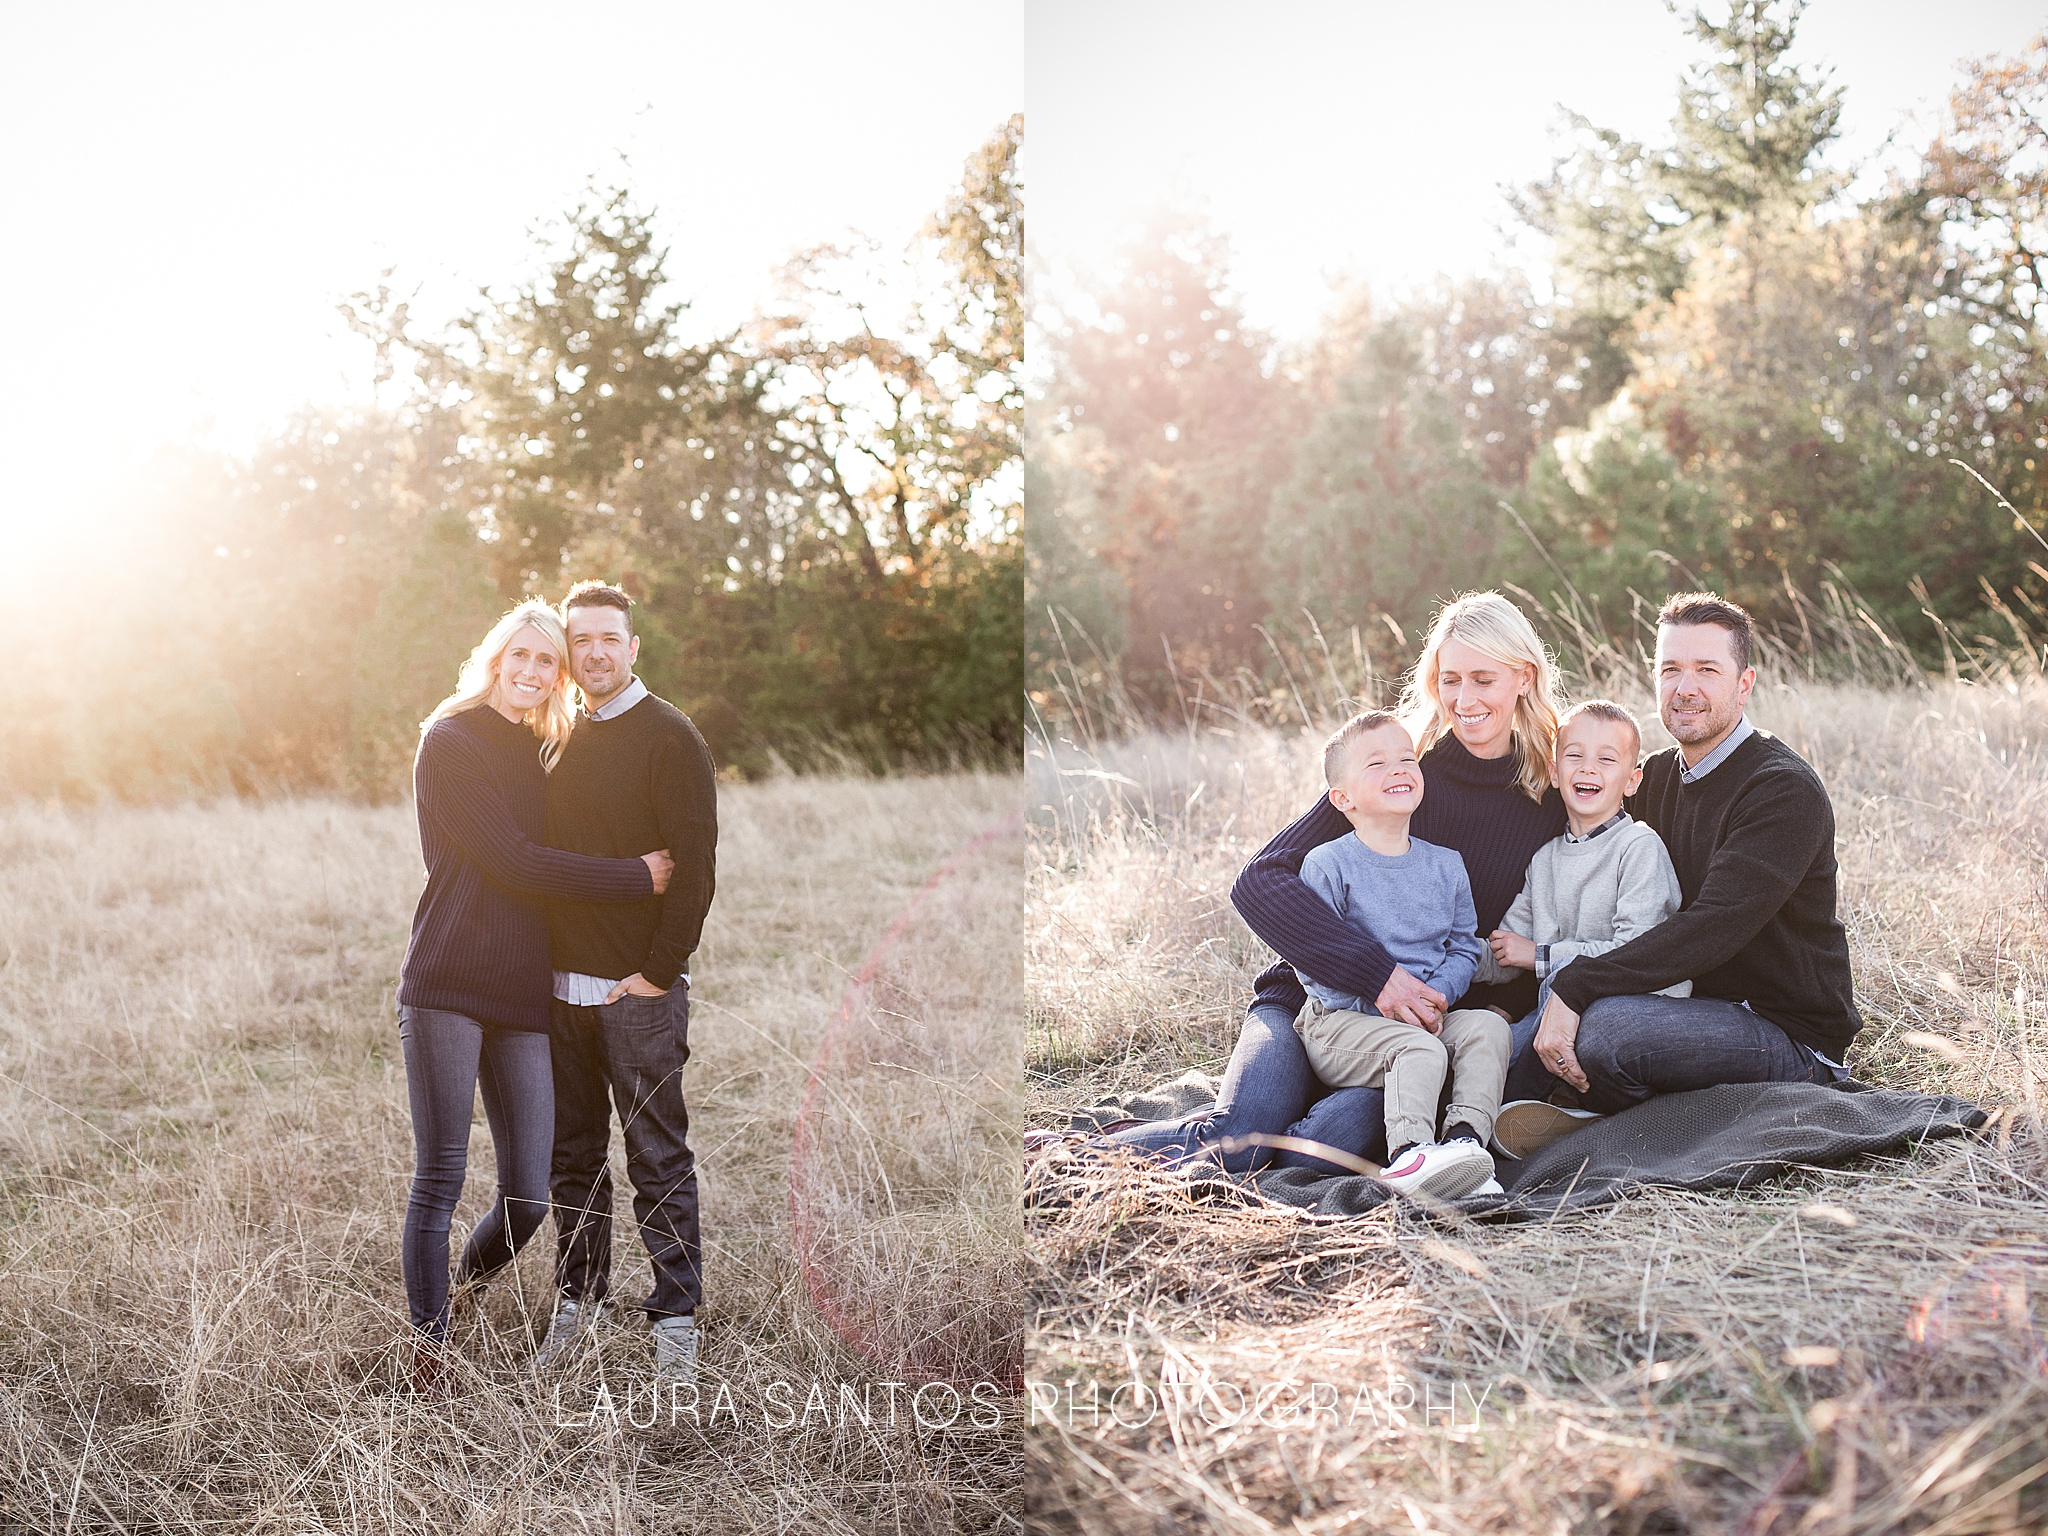 Laura Santos Photography Portland Oregon Family Photographer_0820.jpg